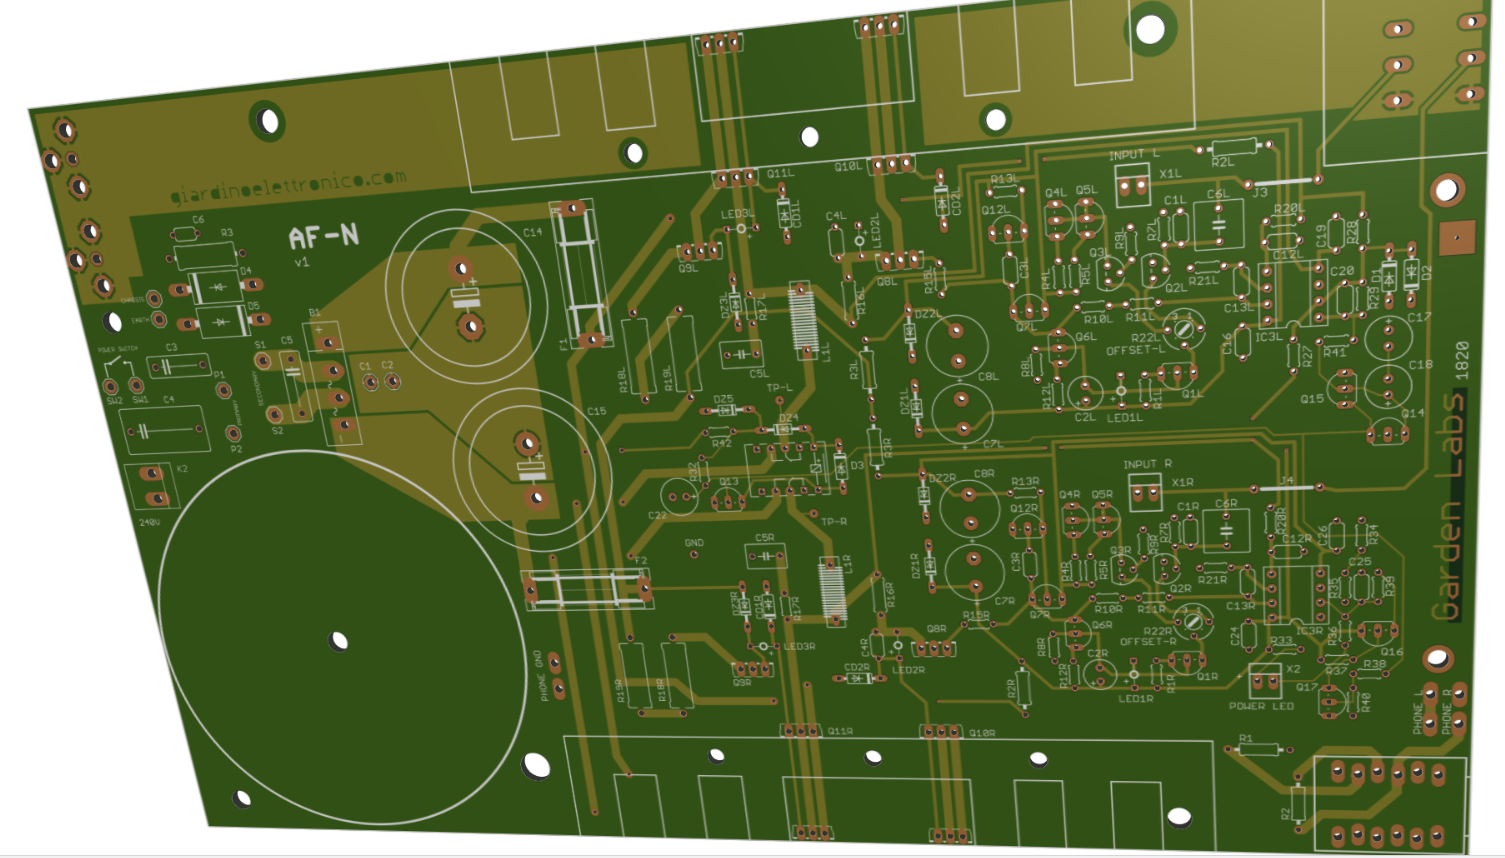 AF-N: group buy PCB - Pagina 3 41577281825_950c5a0465_o_d